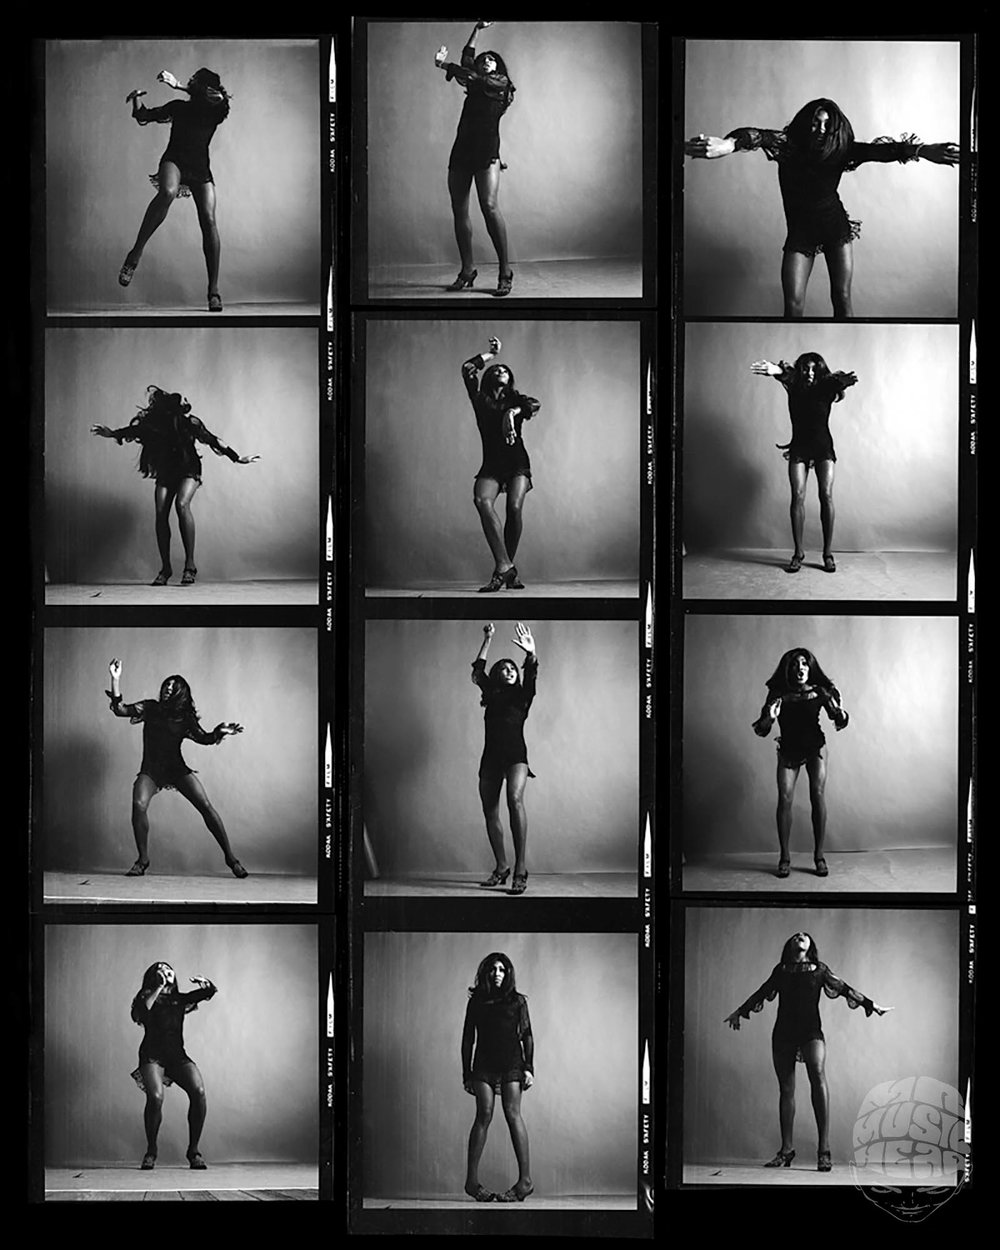 jack robinson_tina turner contact sheet.jpg